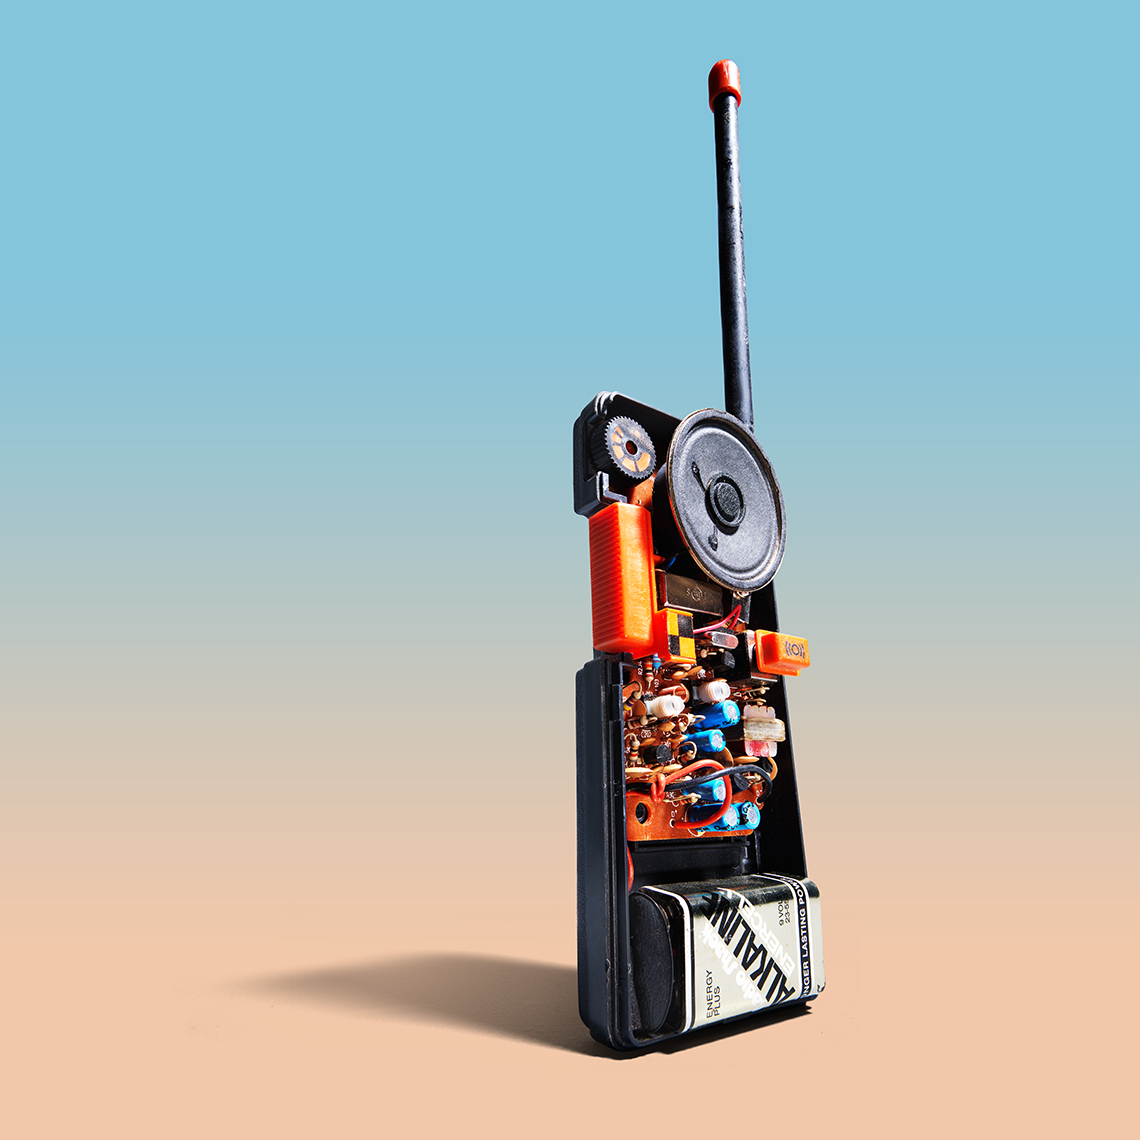 bp_Walkie-Talkie_0073_wk_3